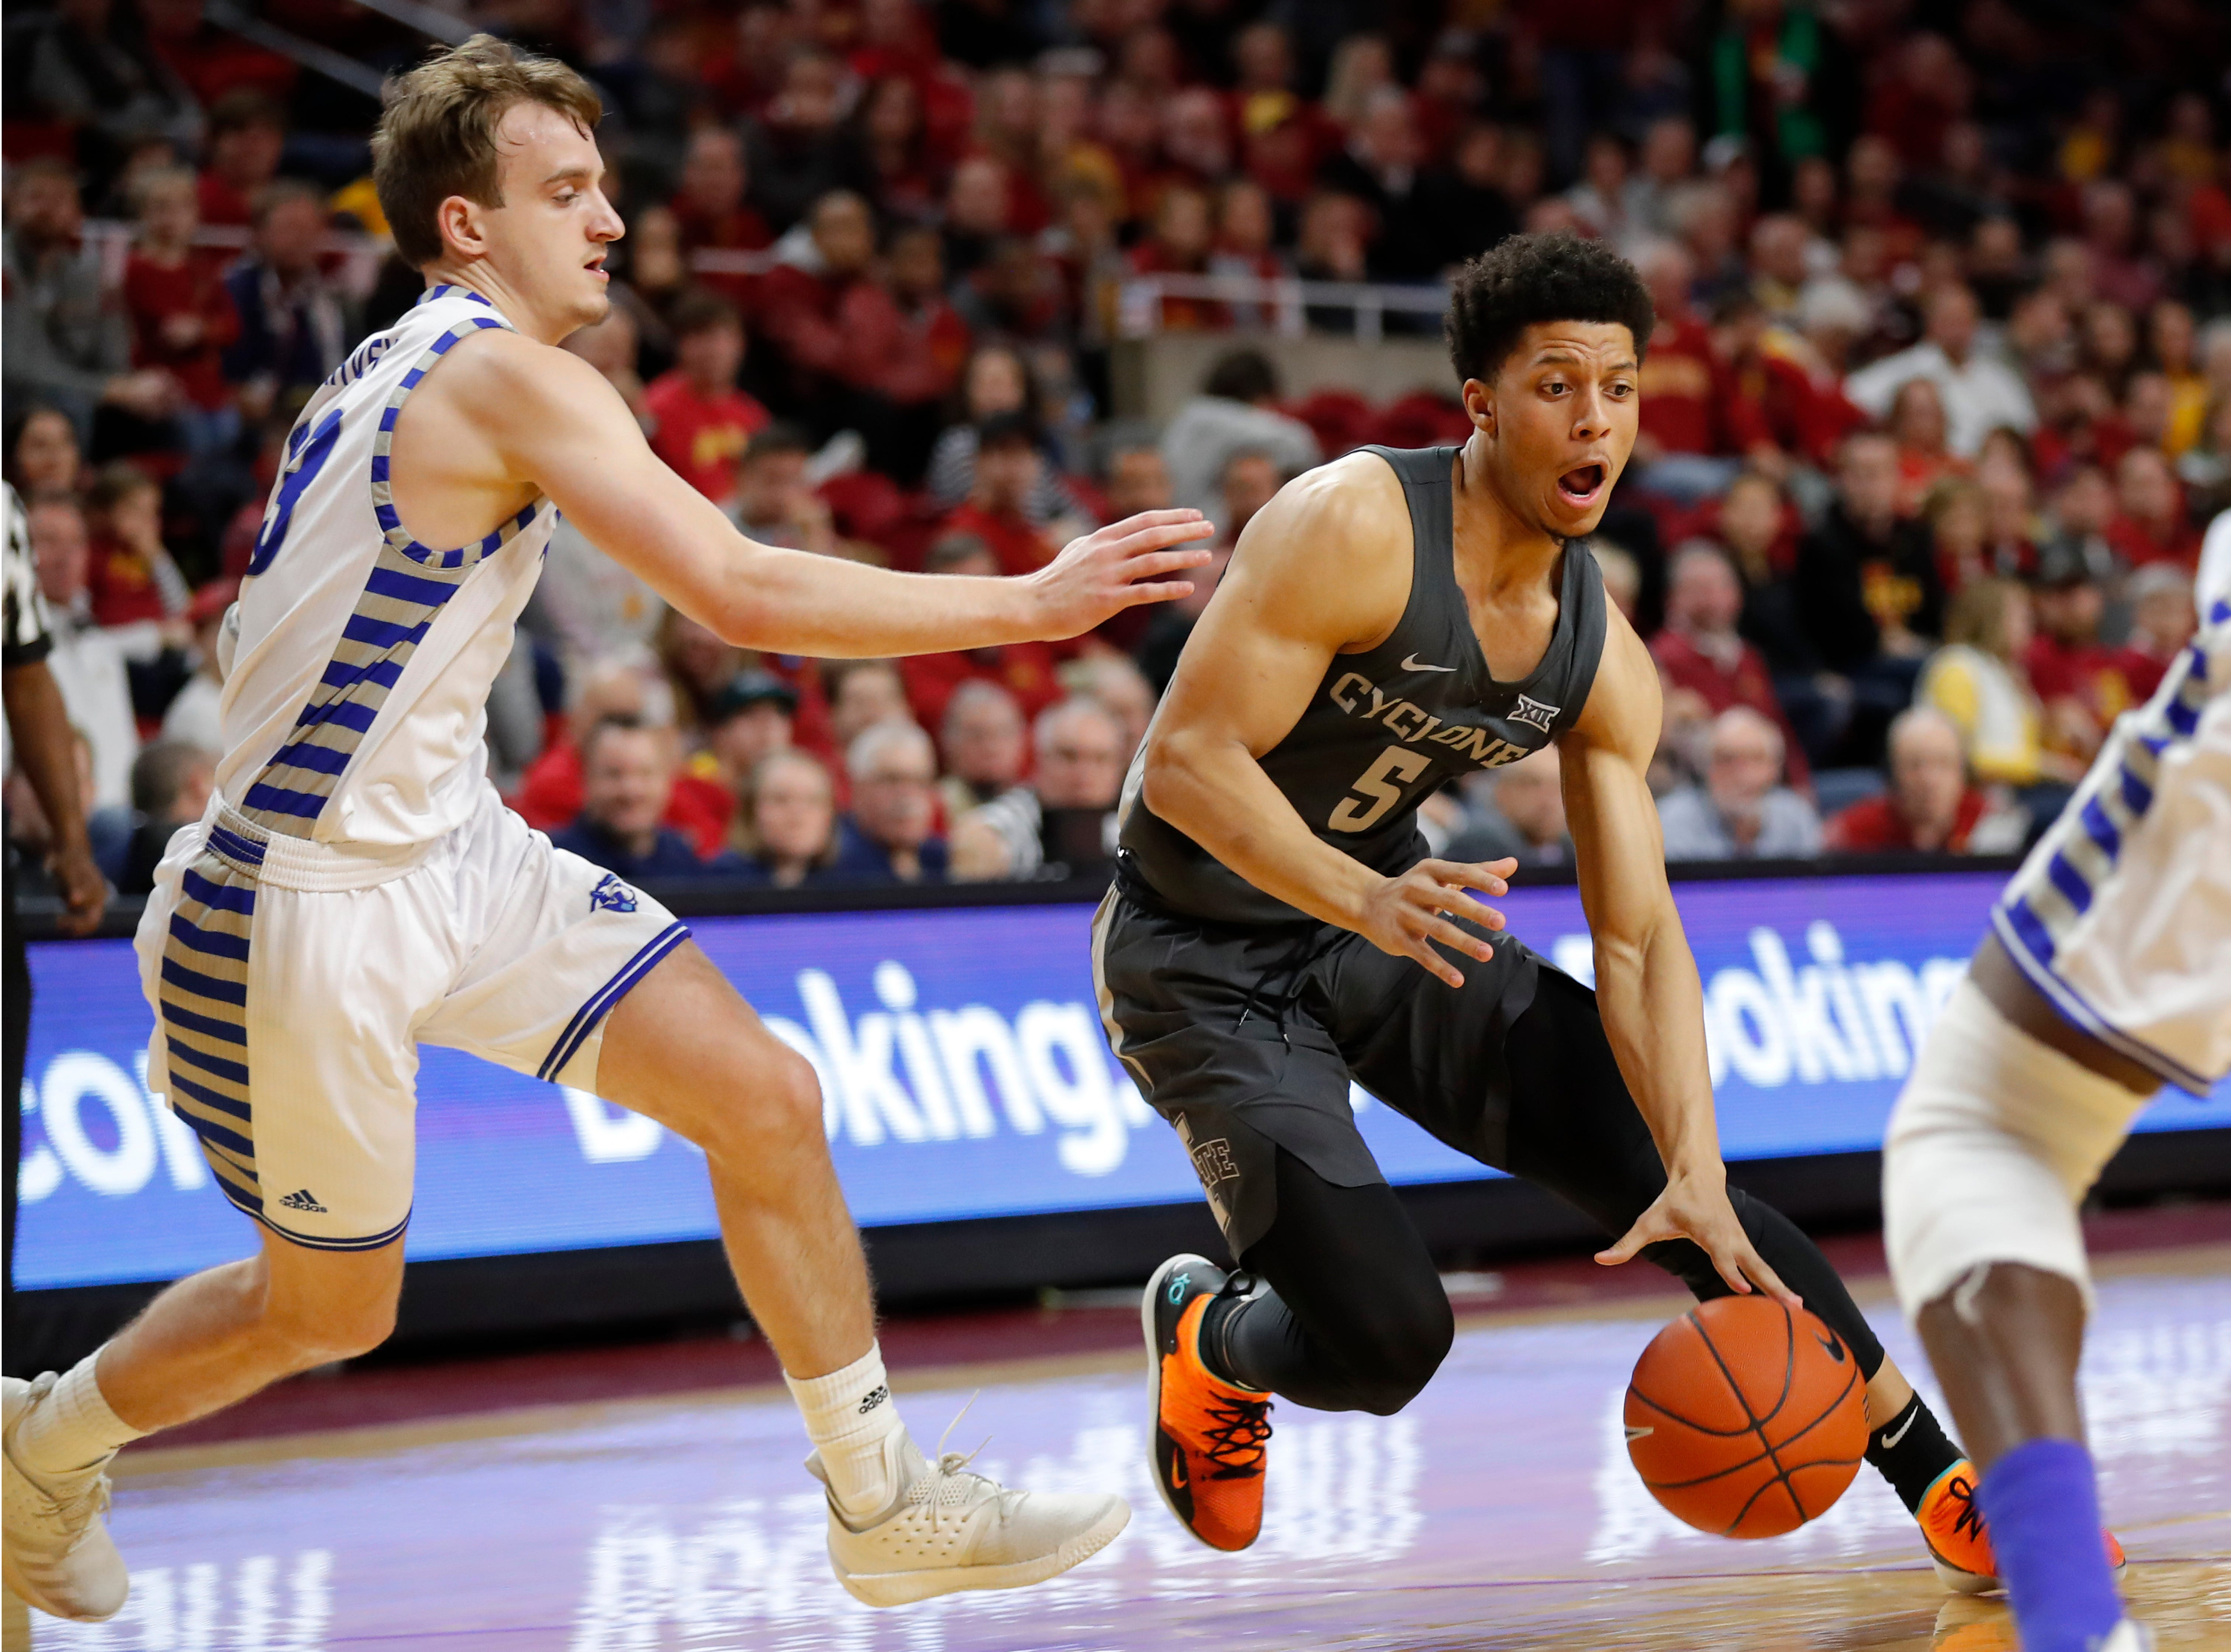 Iowa State guard Lindell Wigginton (5) drives past Eastern Illinois guard Ben Harvey, left, during the first half of an NCAA college basketball game Friday, Dec. 21, 2018, in Ames, Iowa.